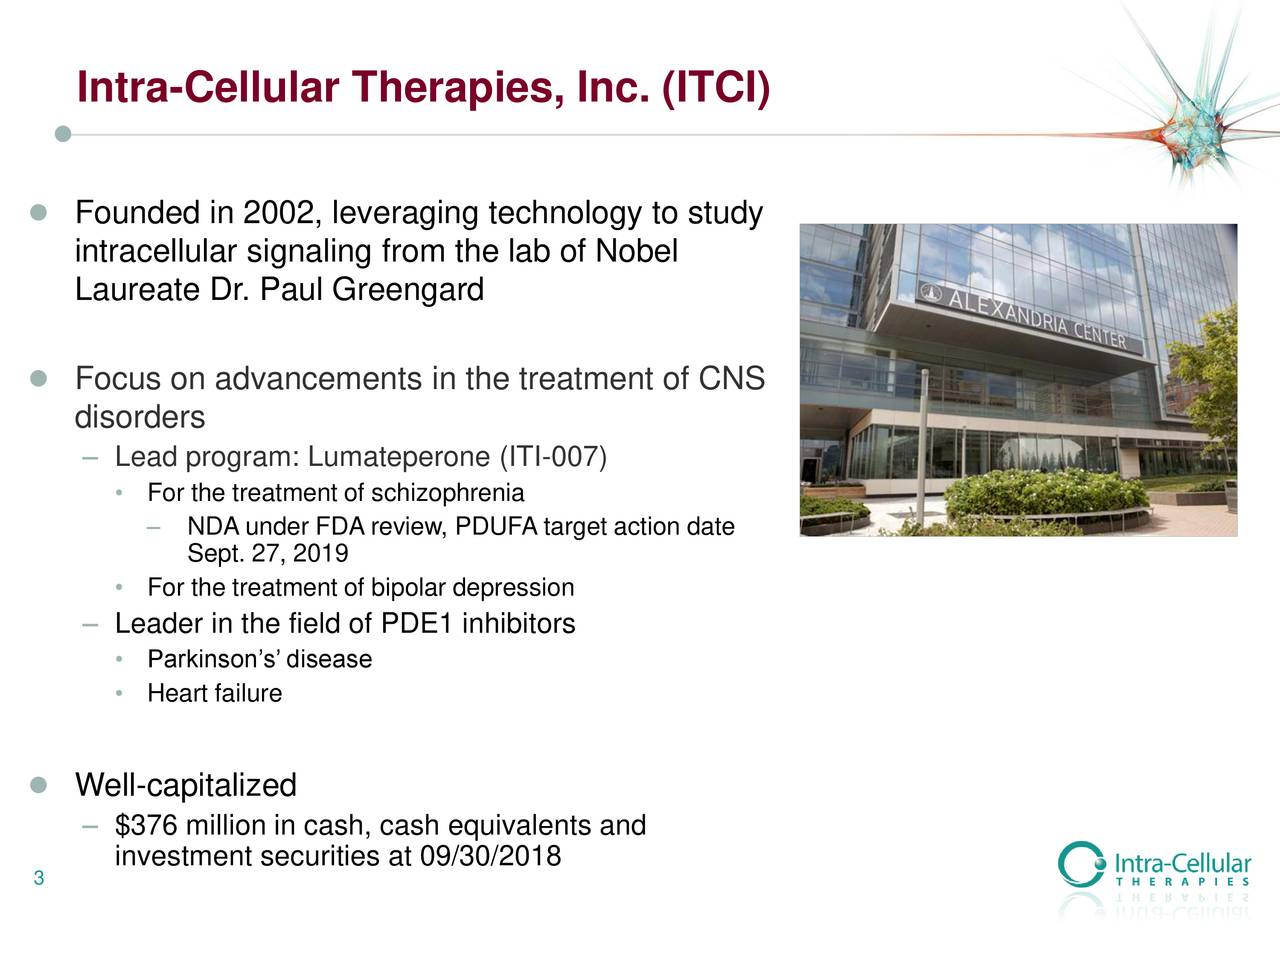 ● Founded in 2002, leveraging technology to study intracellular signaling from the lab of Nobel Laureate Dr. Paul Greengard ● Focus on advancements in the treatment of CNS disorders – Lead program: Lumateperone (ITI-007) • For the treatment of schizophrenia – NDA under FDA review, PDUFA target action date Sept. 27, 2019 • For the treatment of bipolar depression – Leader in the field of PDE1 inhibitors • Parkinson's' disease • Heart failure ● Well-capitalized – $376 million in cash, cash equivalents and 3 investment securities at 09/30/2018